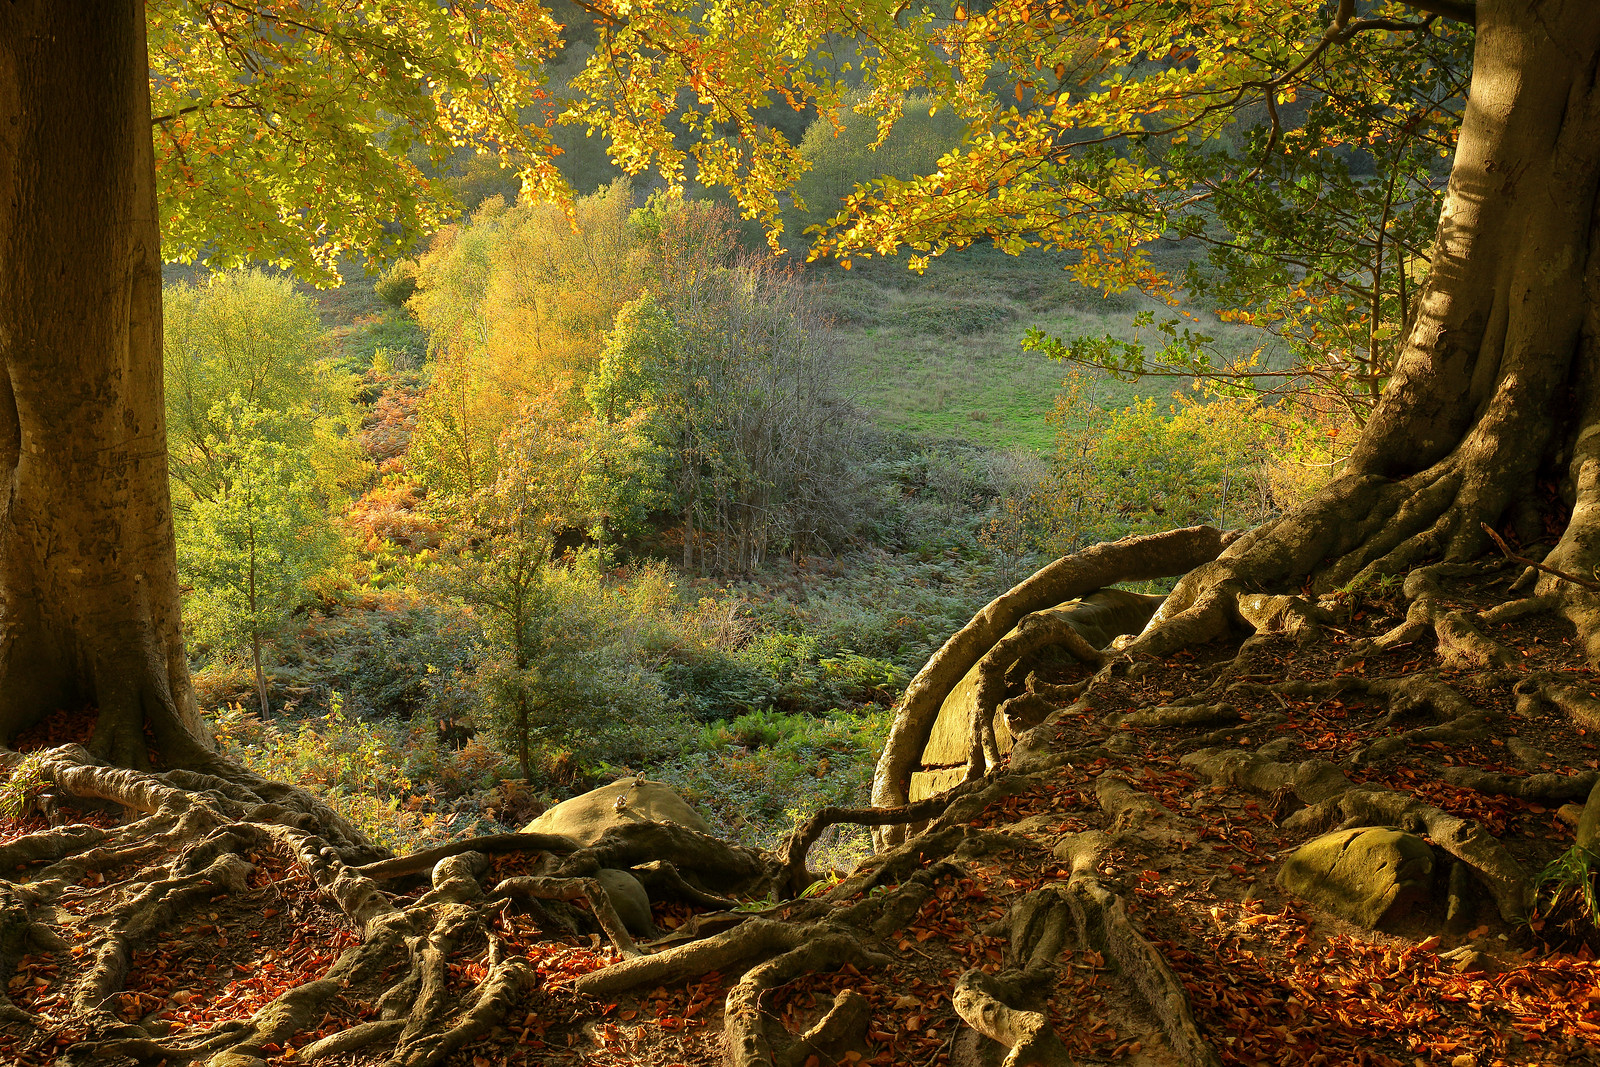 Autumn Woodland - 22nd October 2020